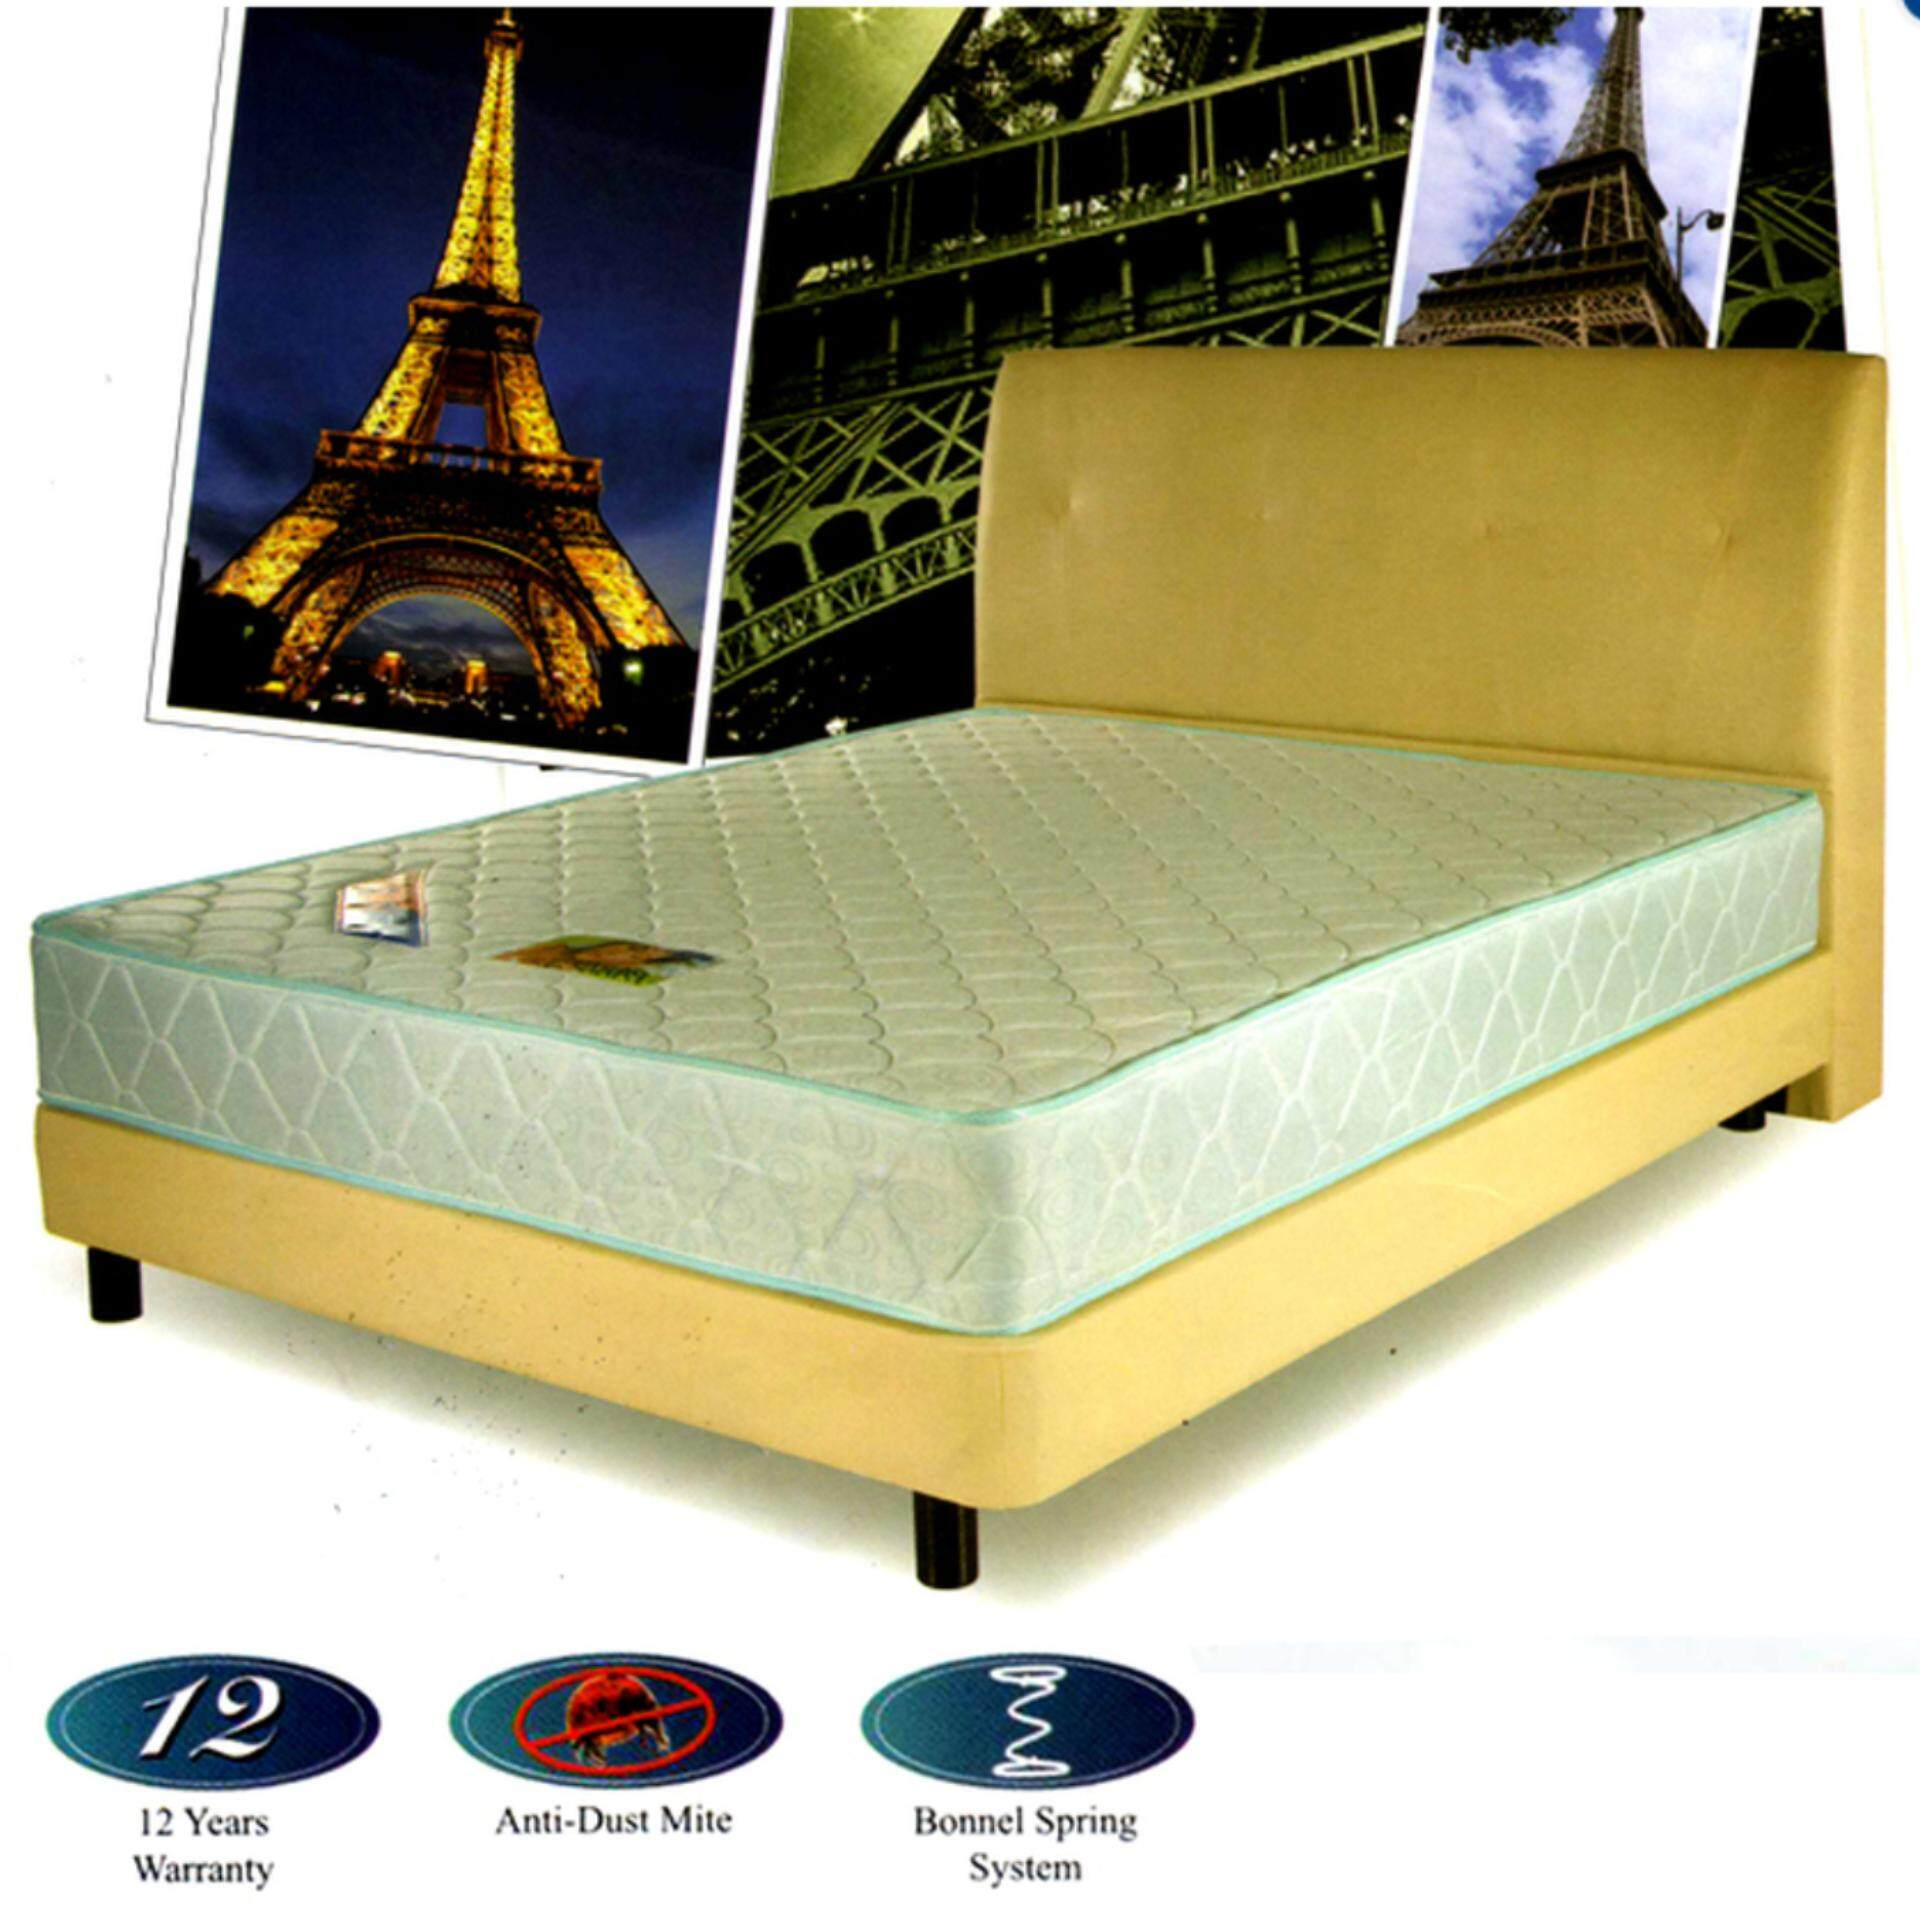 Masterfoam Paris Queen Semi-Firm Spring Mattress 8 inches Thick (12 Years Warranty)